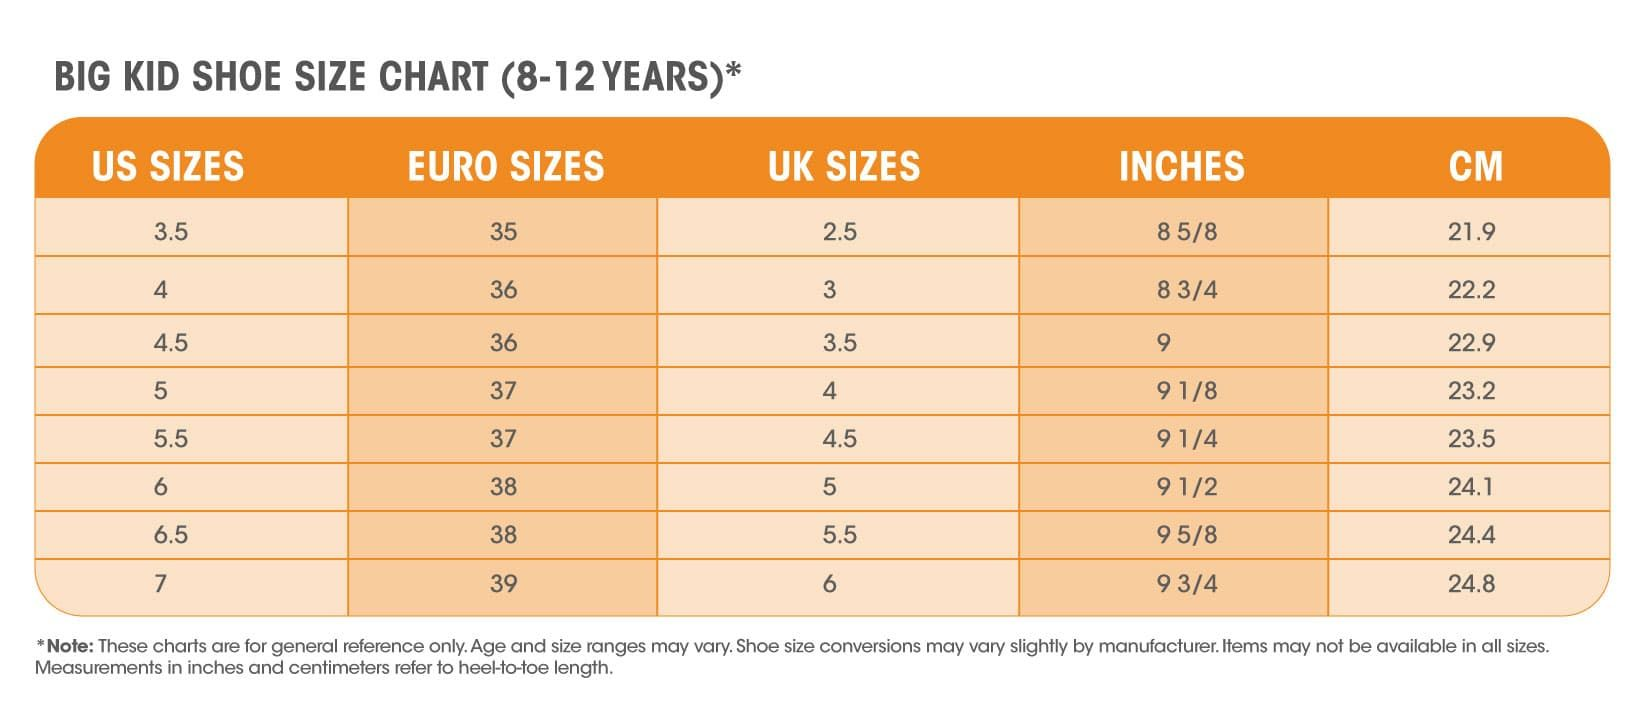 Women S Shoe Size In Inches.How To Find The Youth Equivalent Of Women S Shoe Sizes